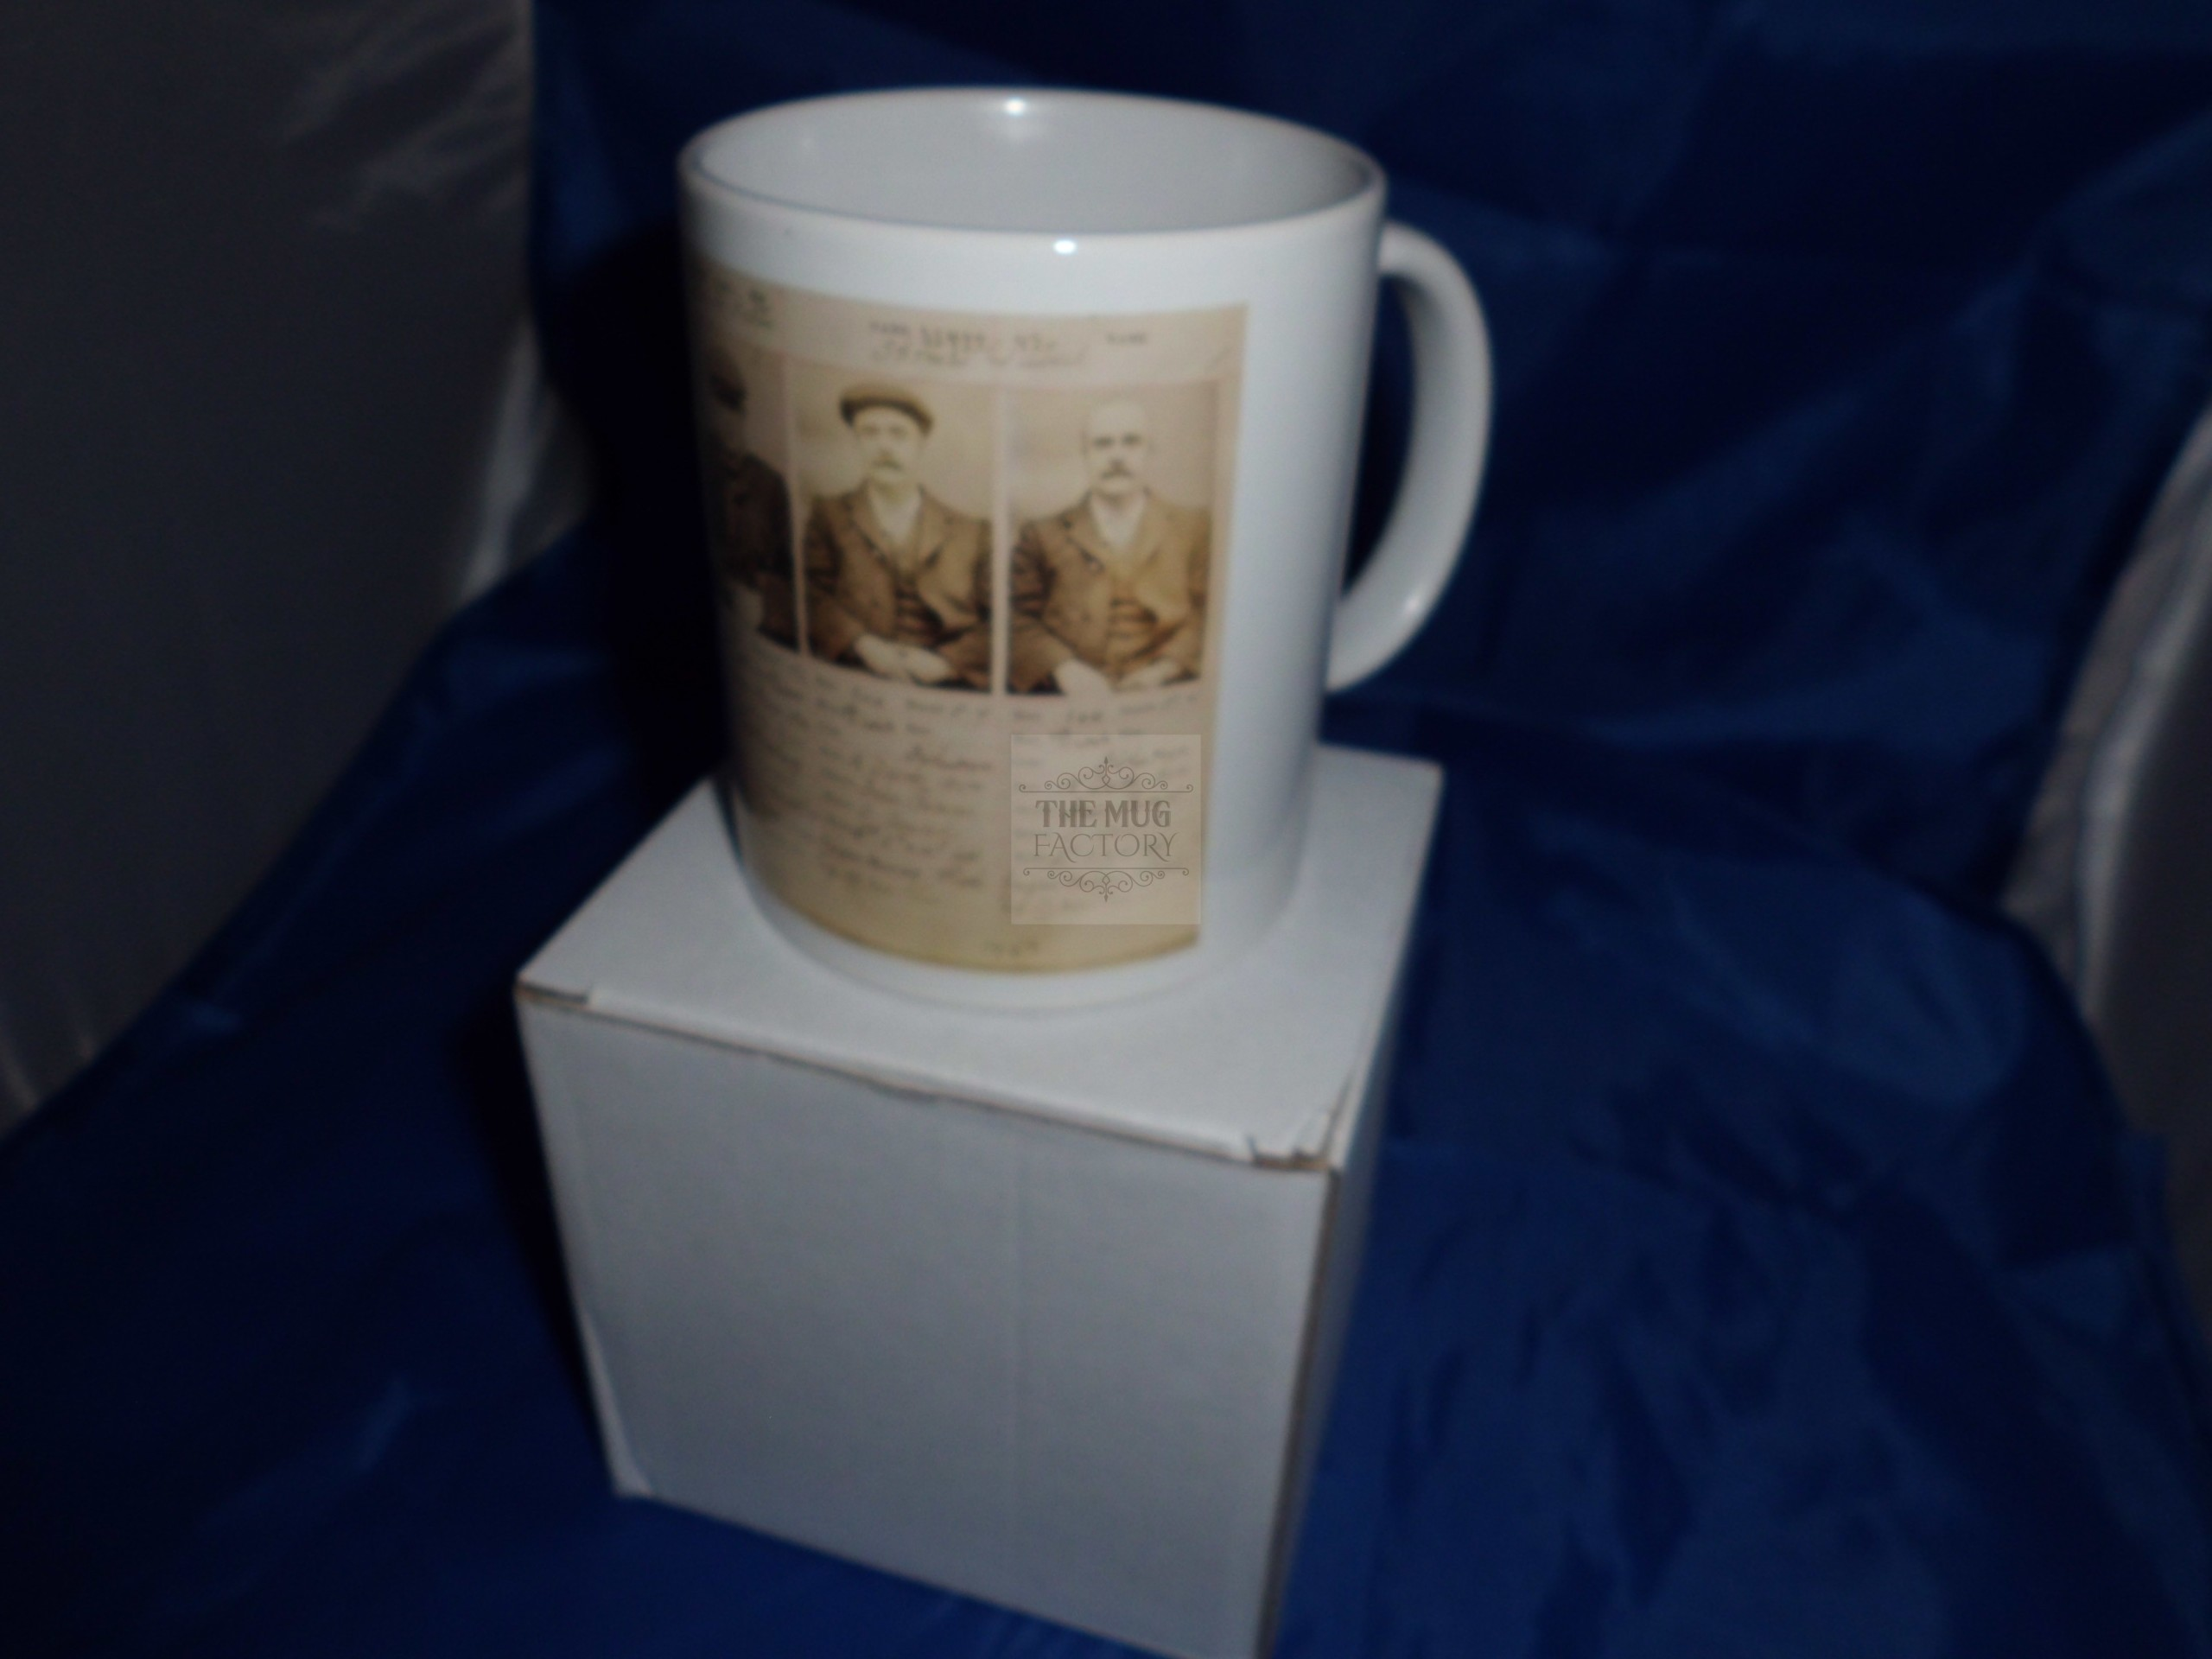 Peaky Blinders Original gang members Historical printed mug